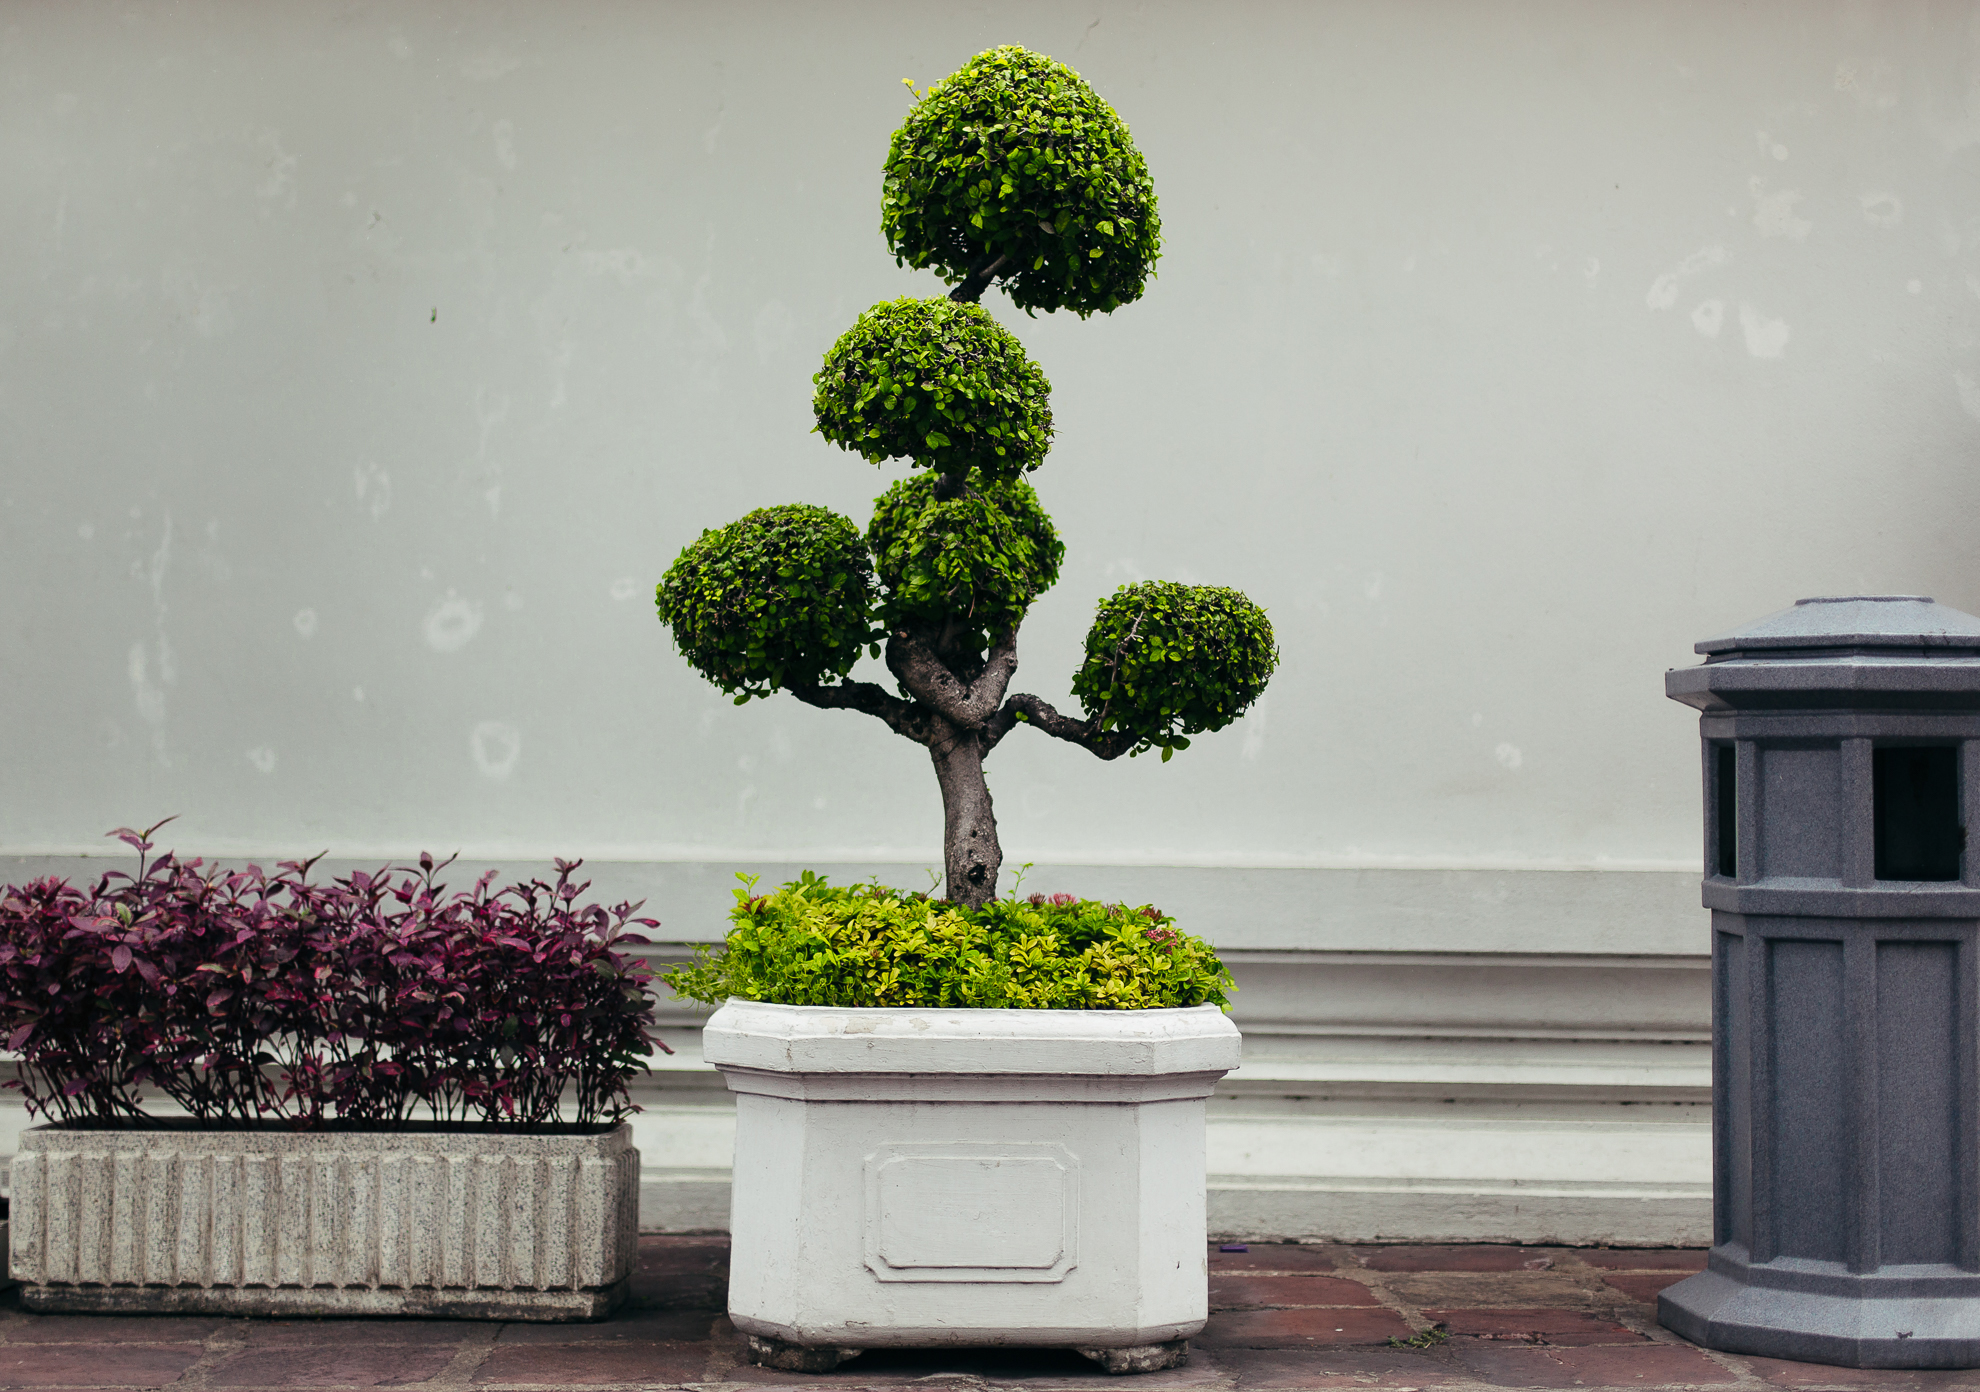 A well manicured tree